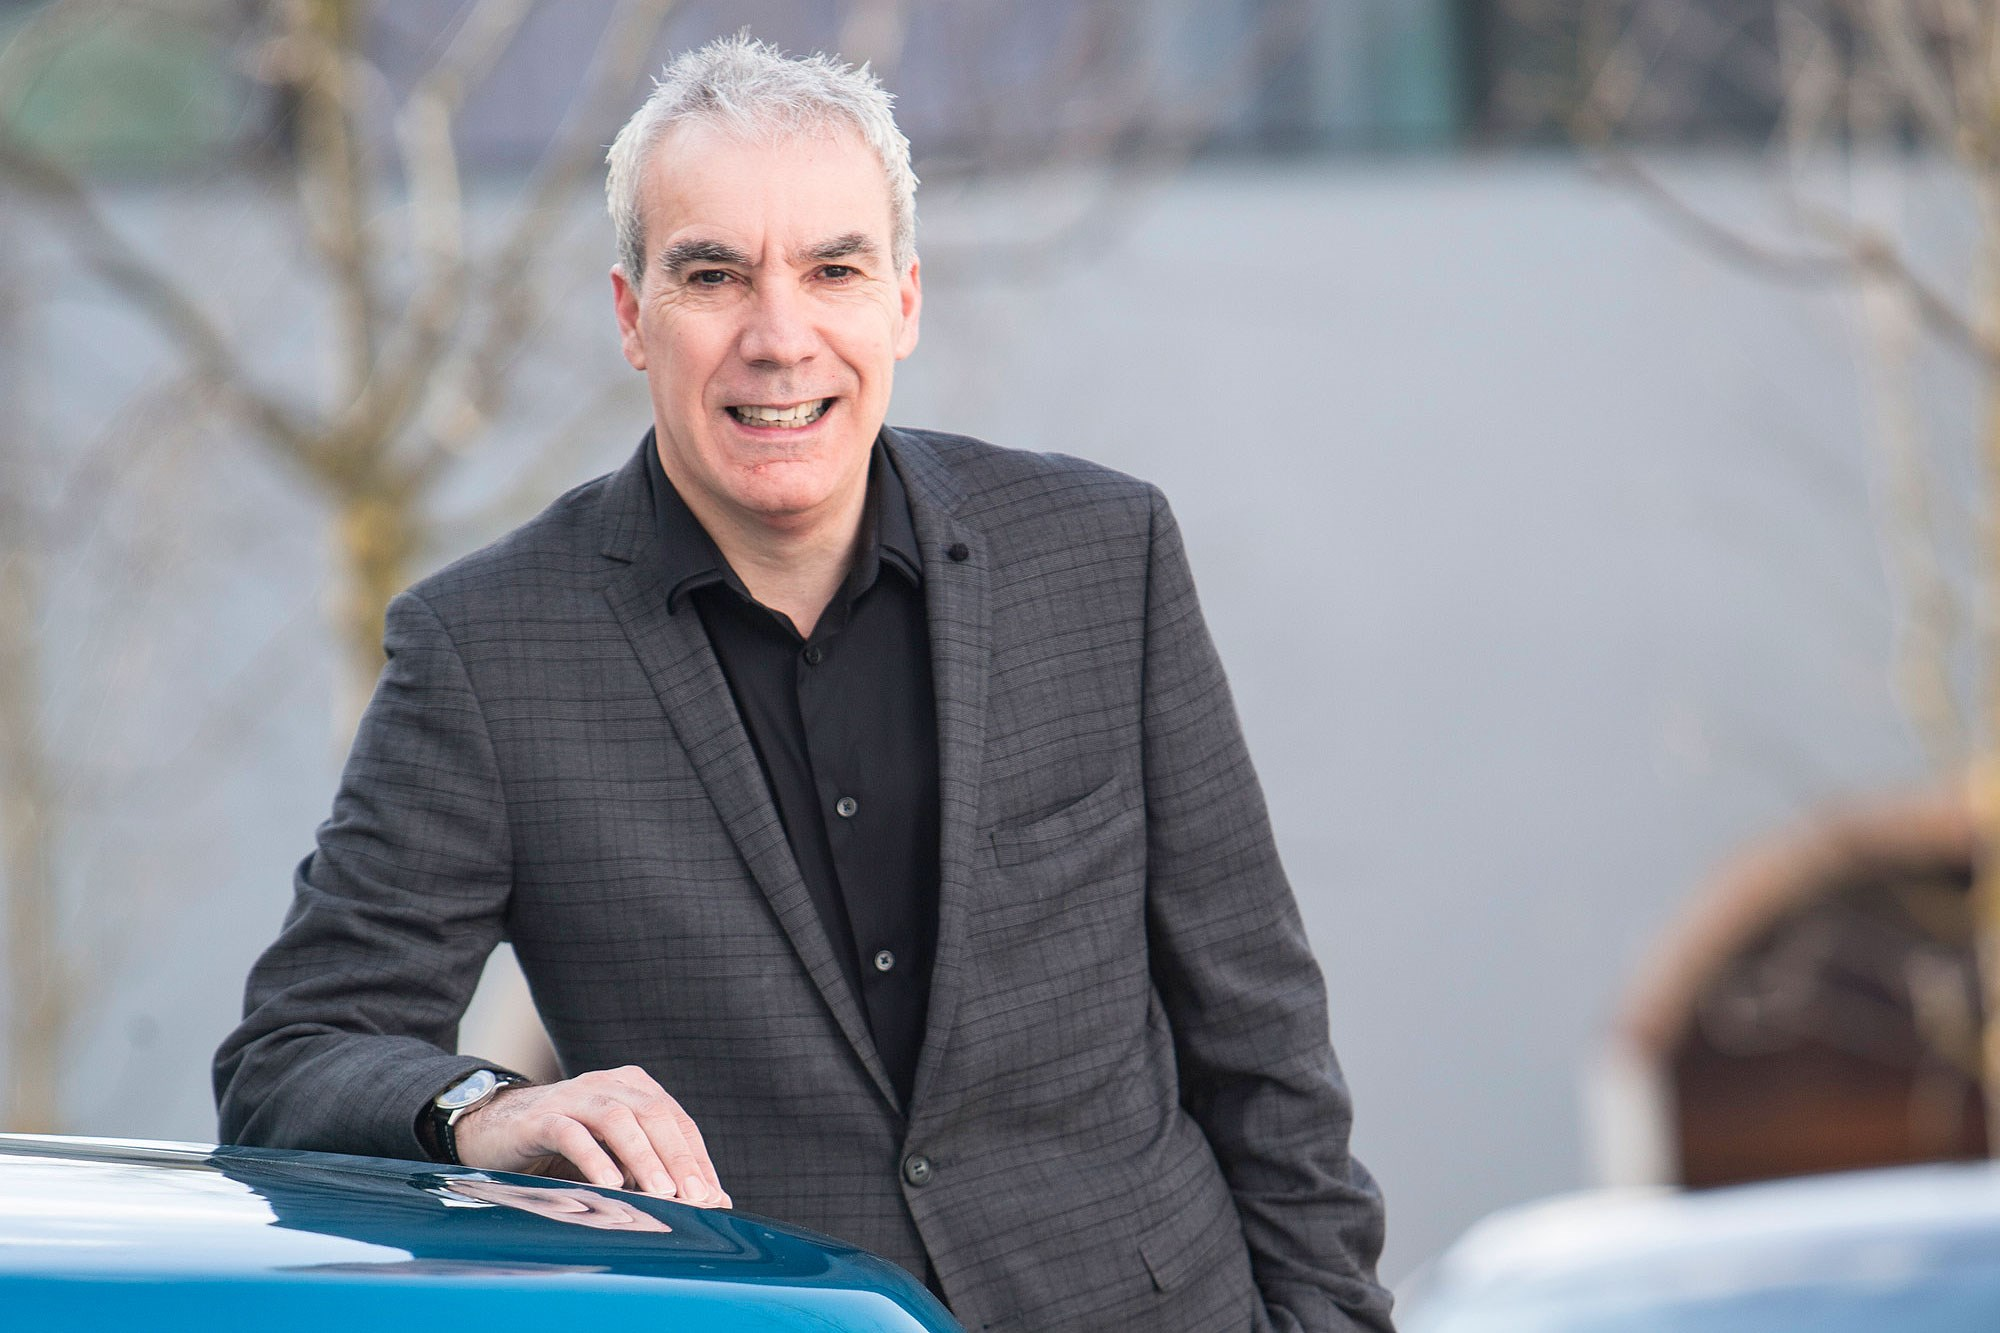 Dale Wyatt, managing director, Suzuki GB